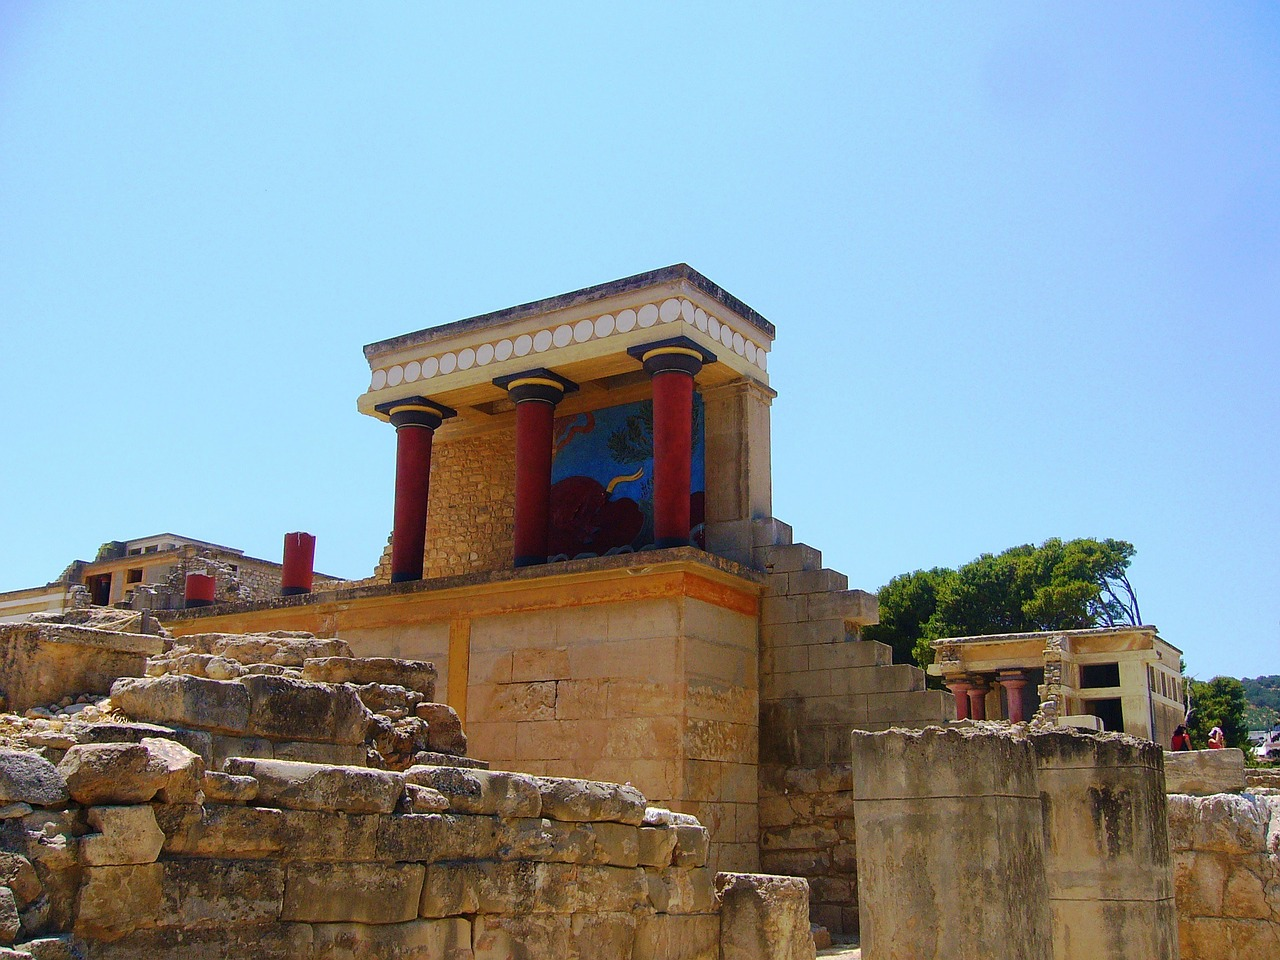 The Palace of Knossos is one of the Crete;s points of interest. Discover what to do in Crete from this Crete guide. #crete #cretetravel #creteguide #cretebycar #cretegreece #greece #europe